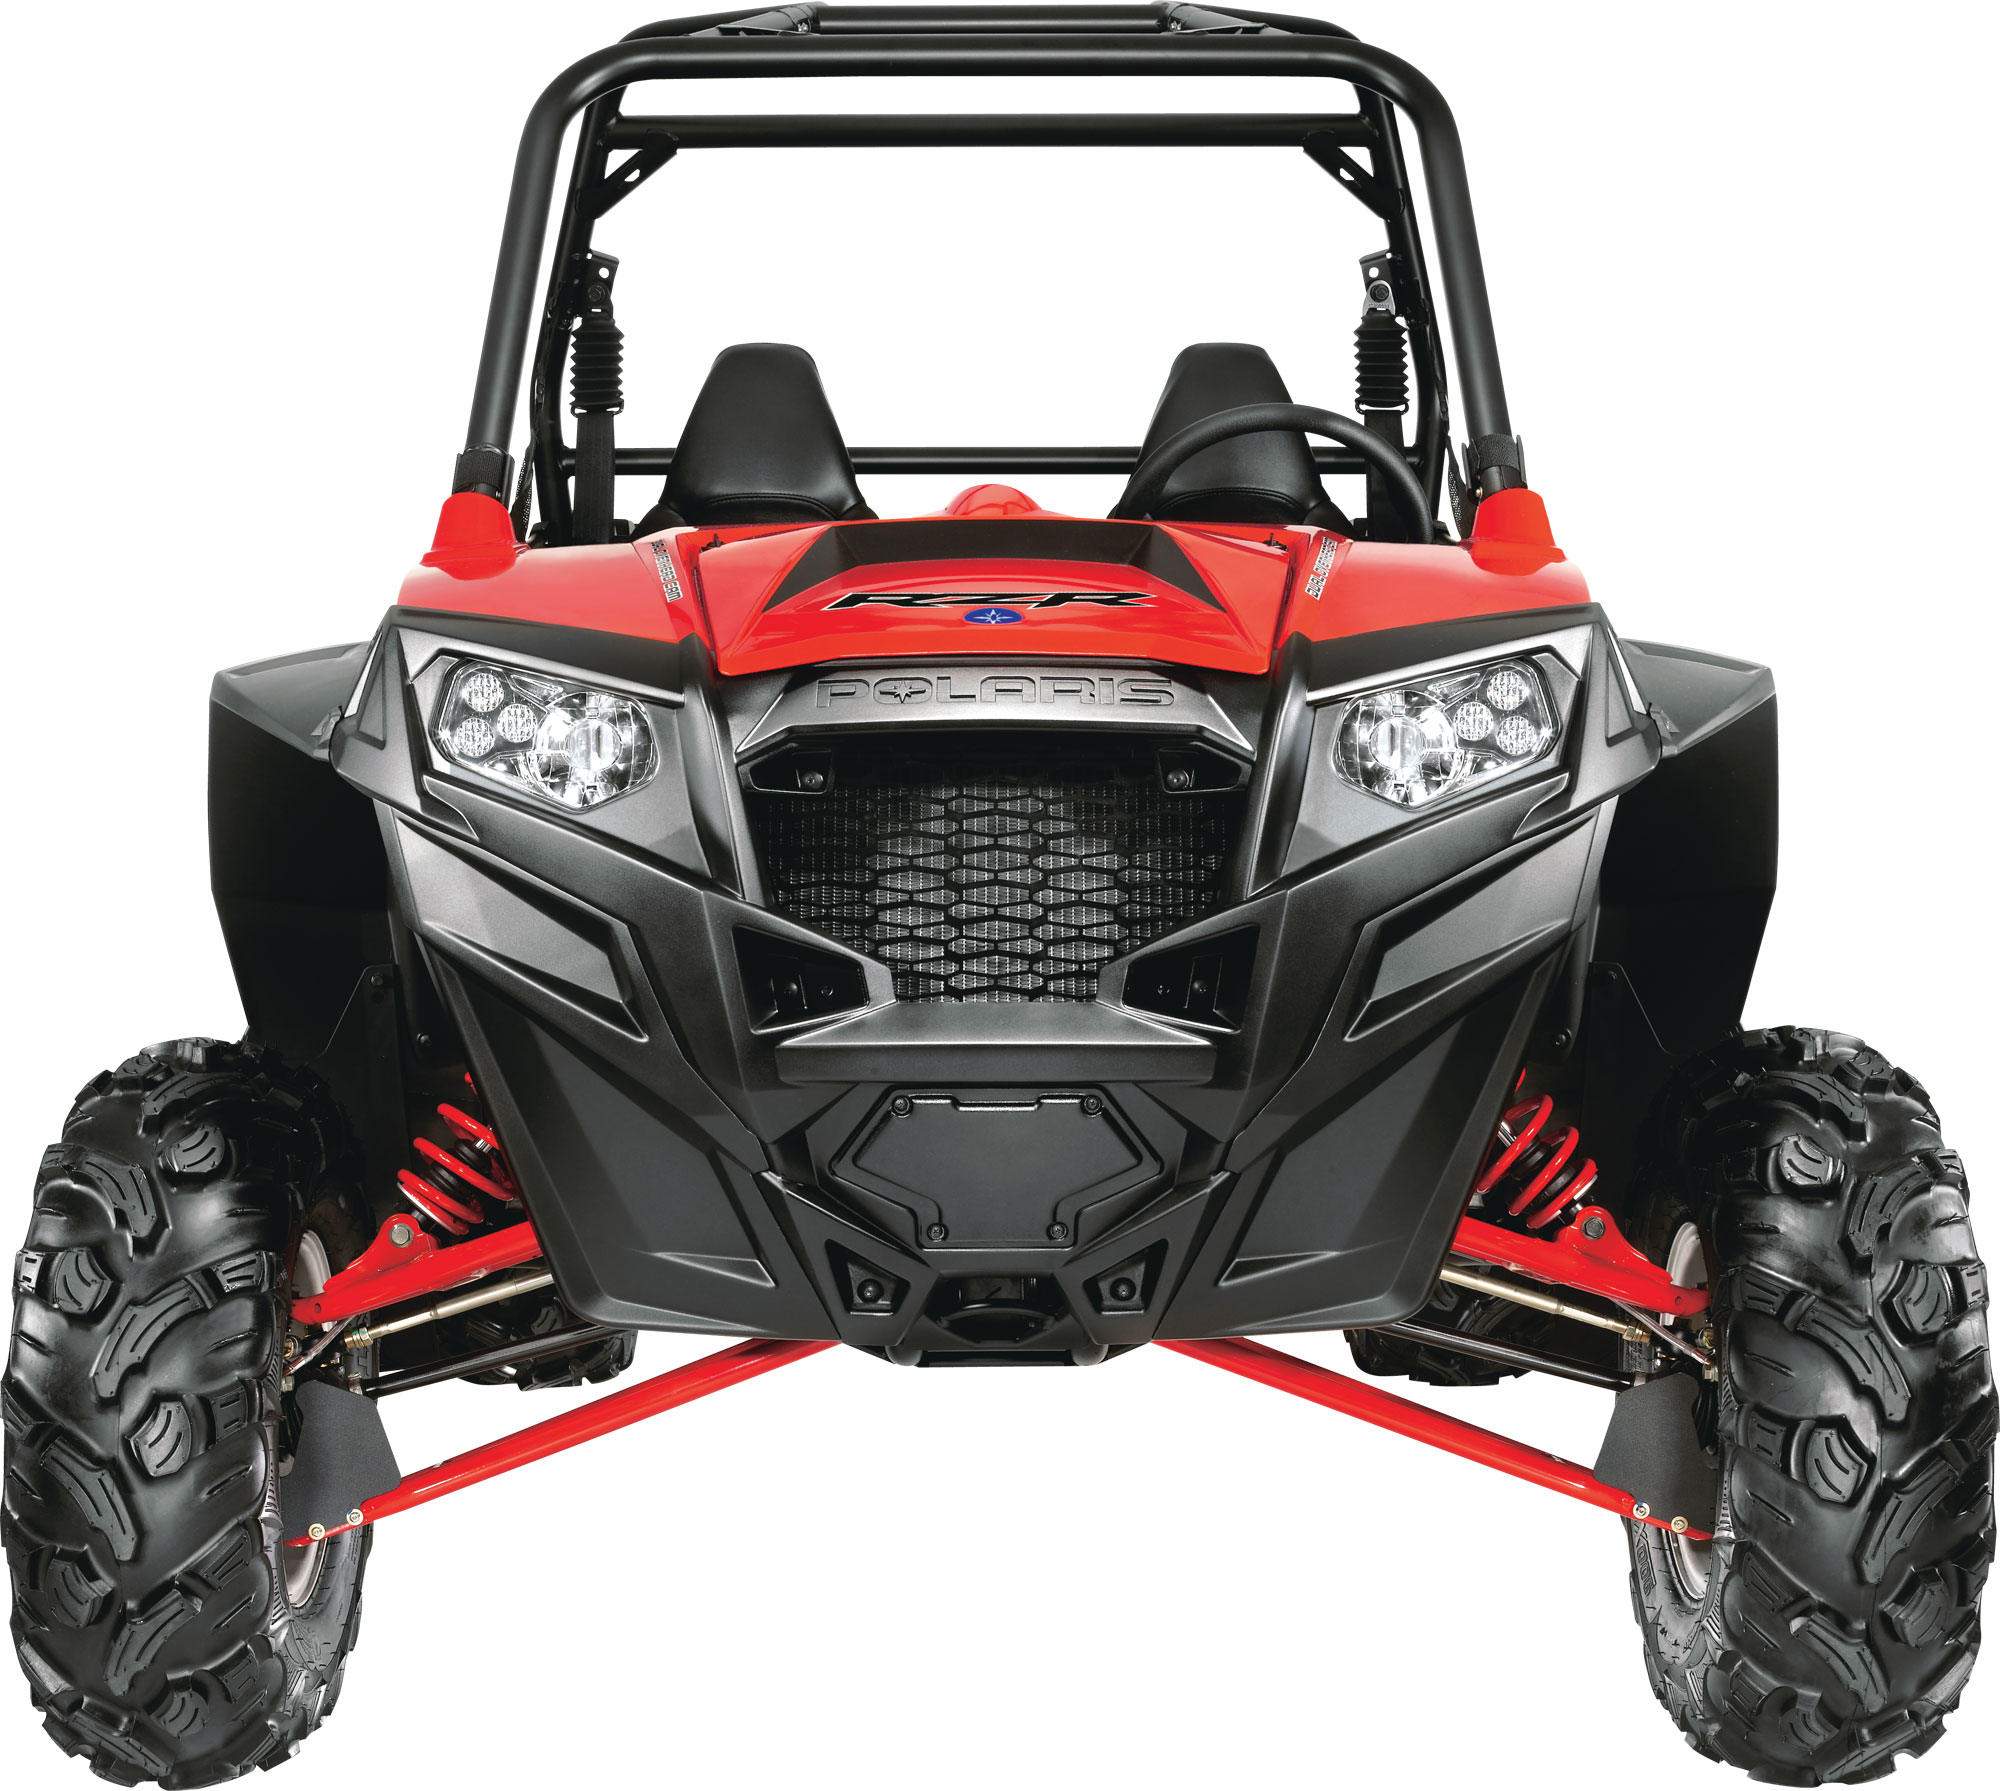 Polaris Rzr Xp 900 Specs - 2011  2012